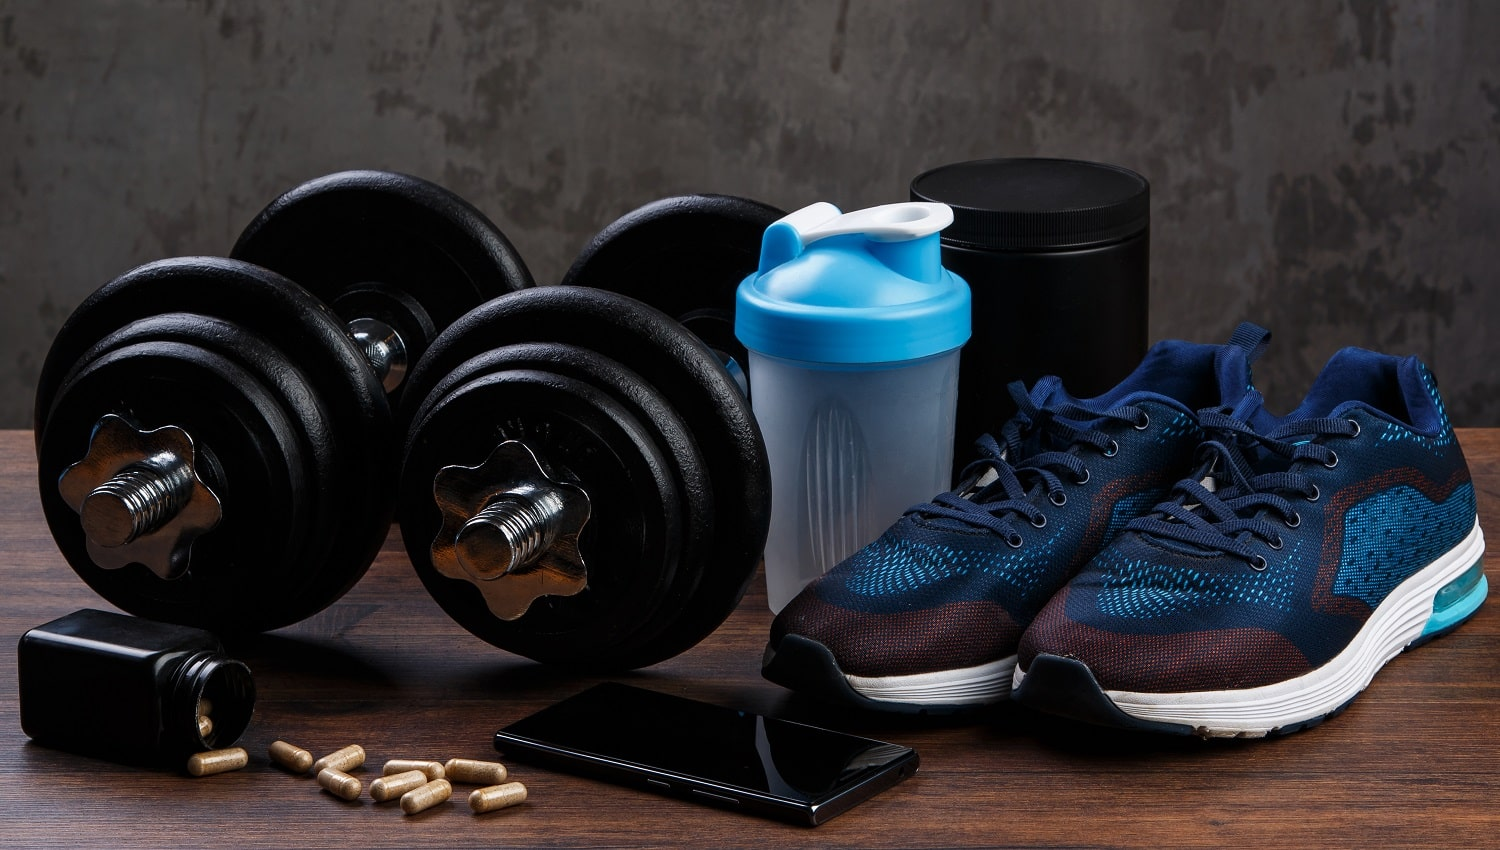 Different items for fitness and workout